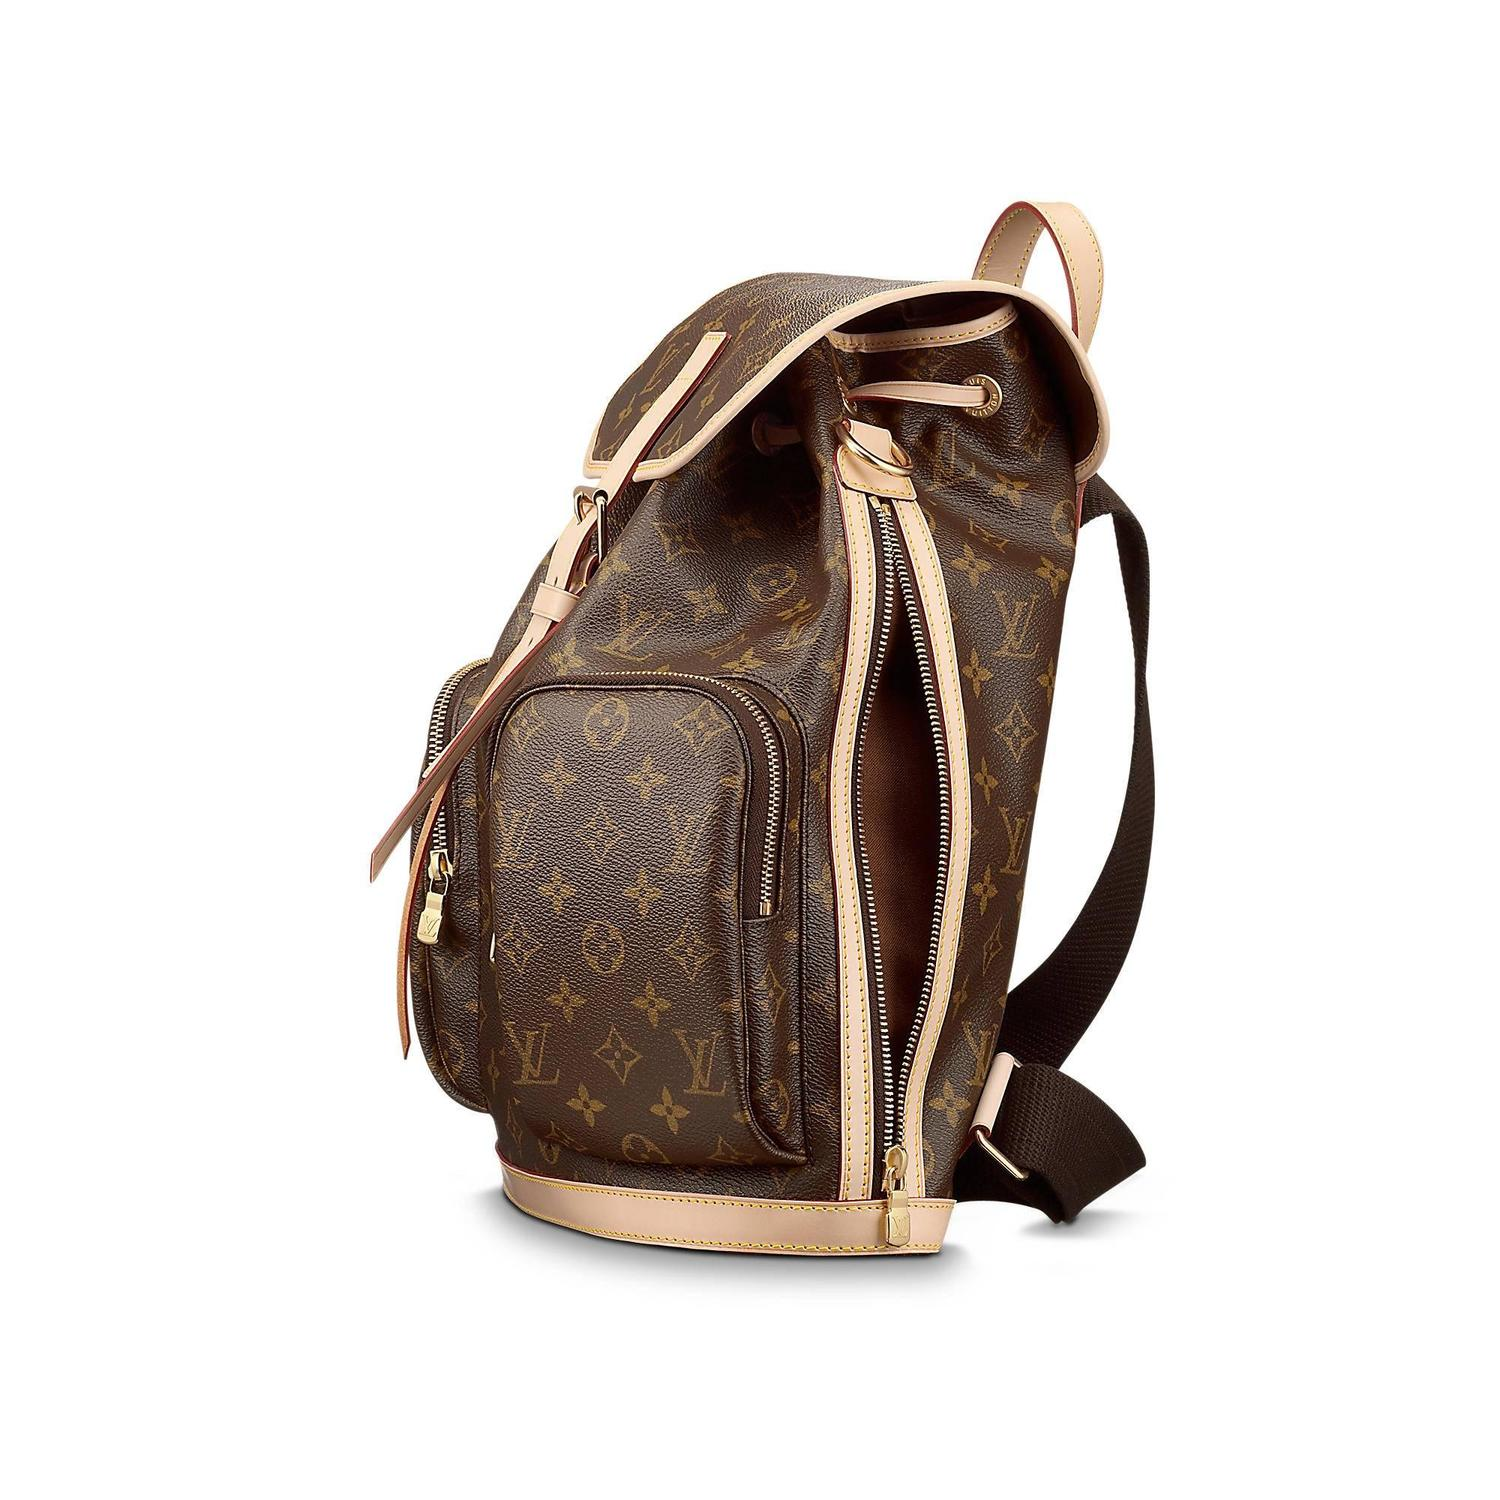 new louis vuitton bosphore backpack in striking monogram. Black Bedroom Furniture Sets. Home Design Ideas